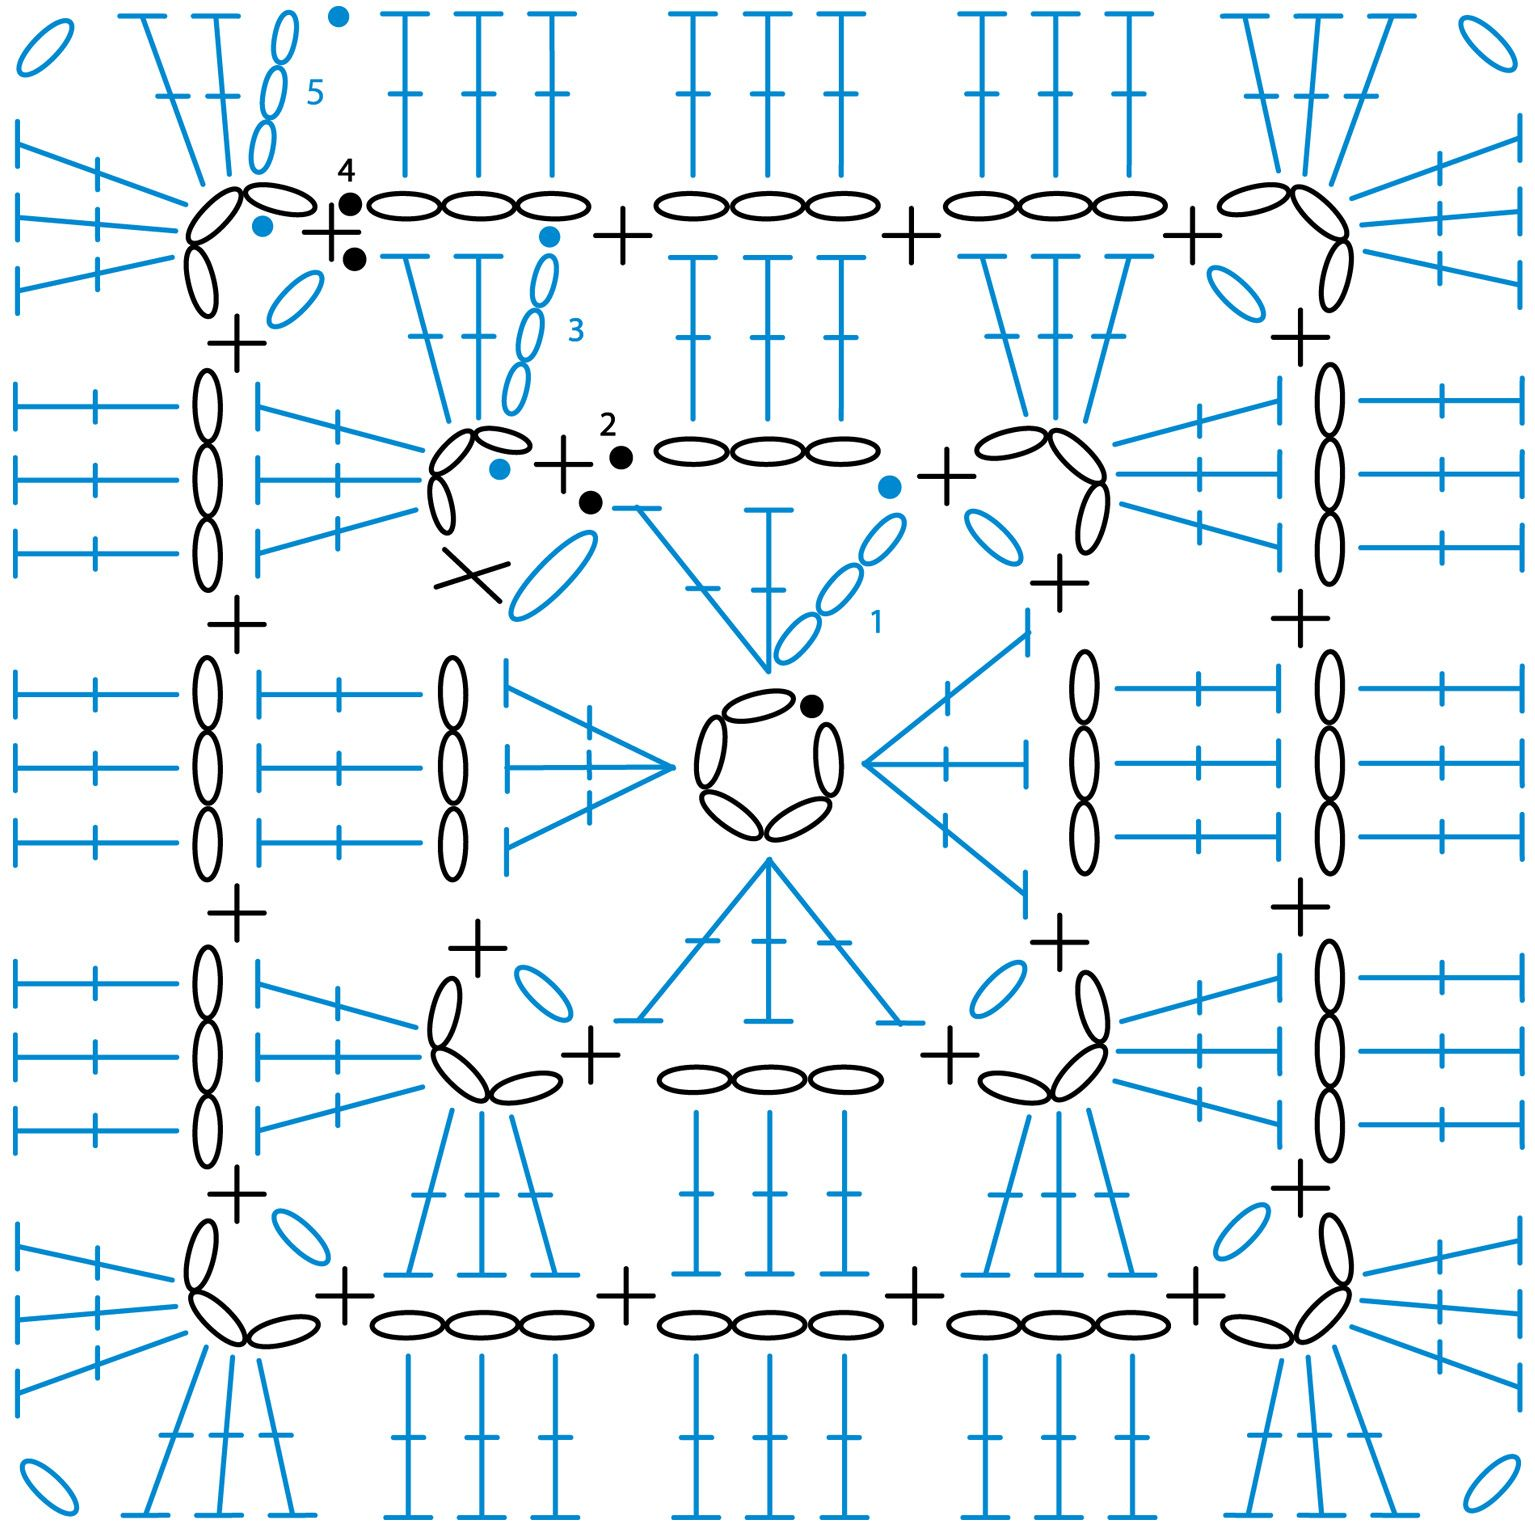 diagram for granny square crochet stitch dodge electronic power steering patterns simply knitting